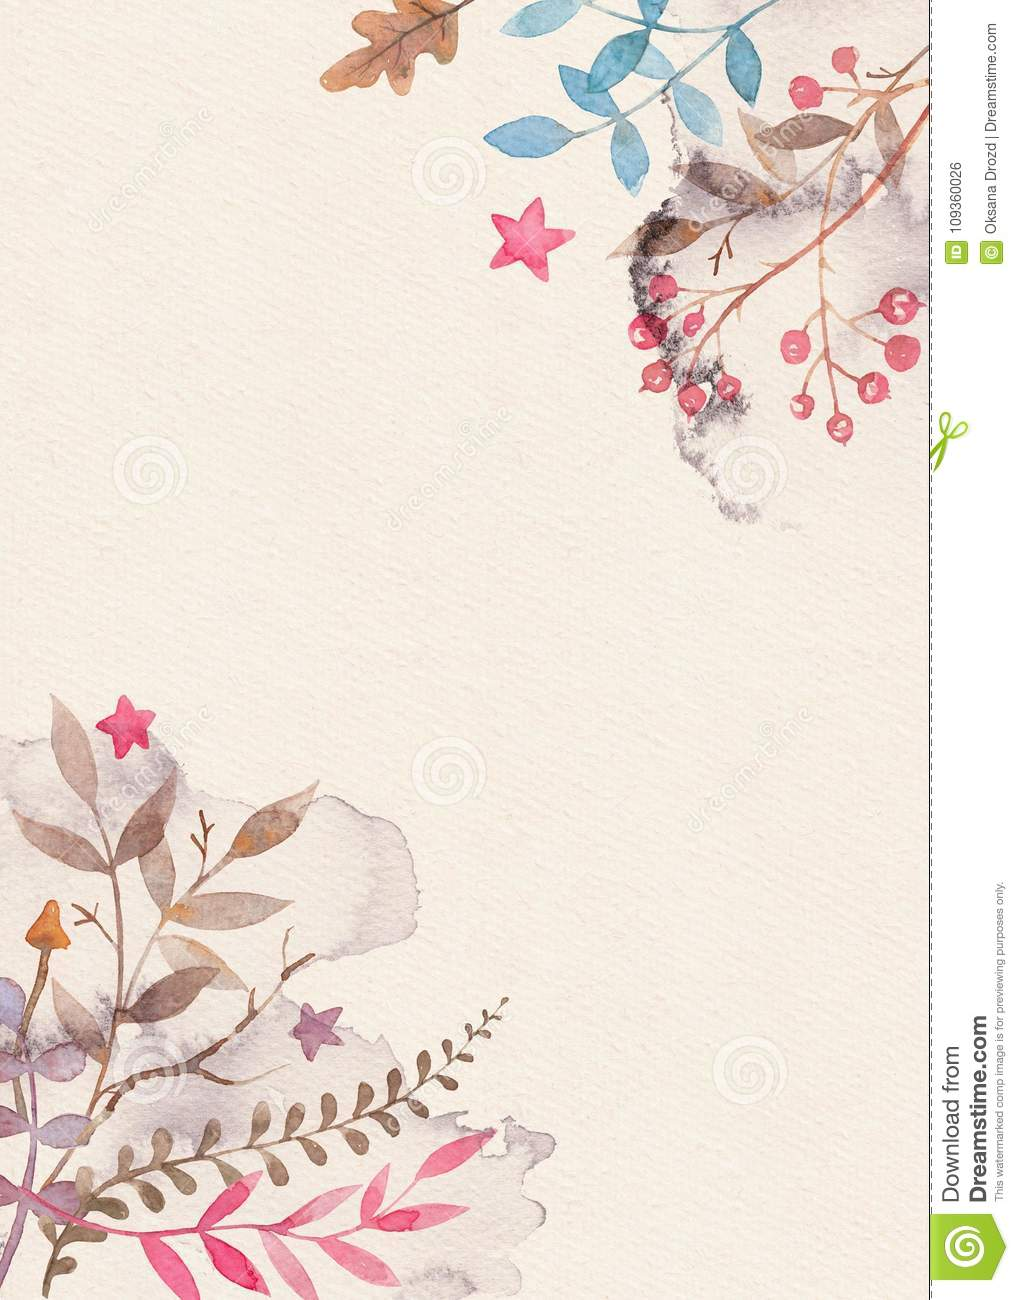 Hand Drawn Watercolor Greeting Card Template With Floral Ornament